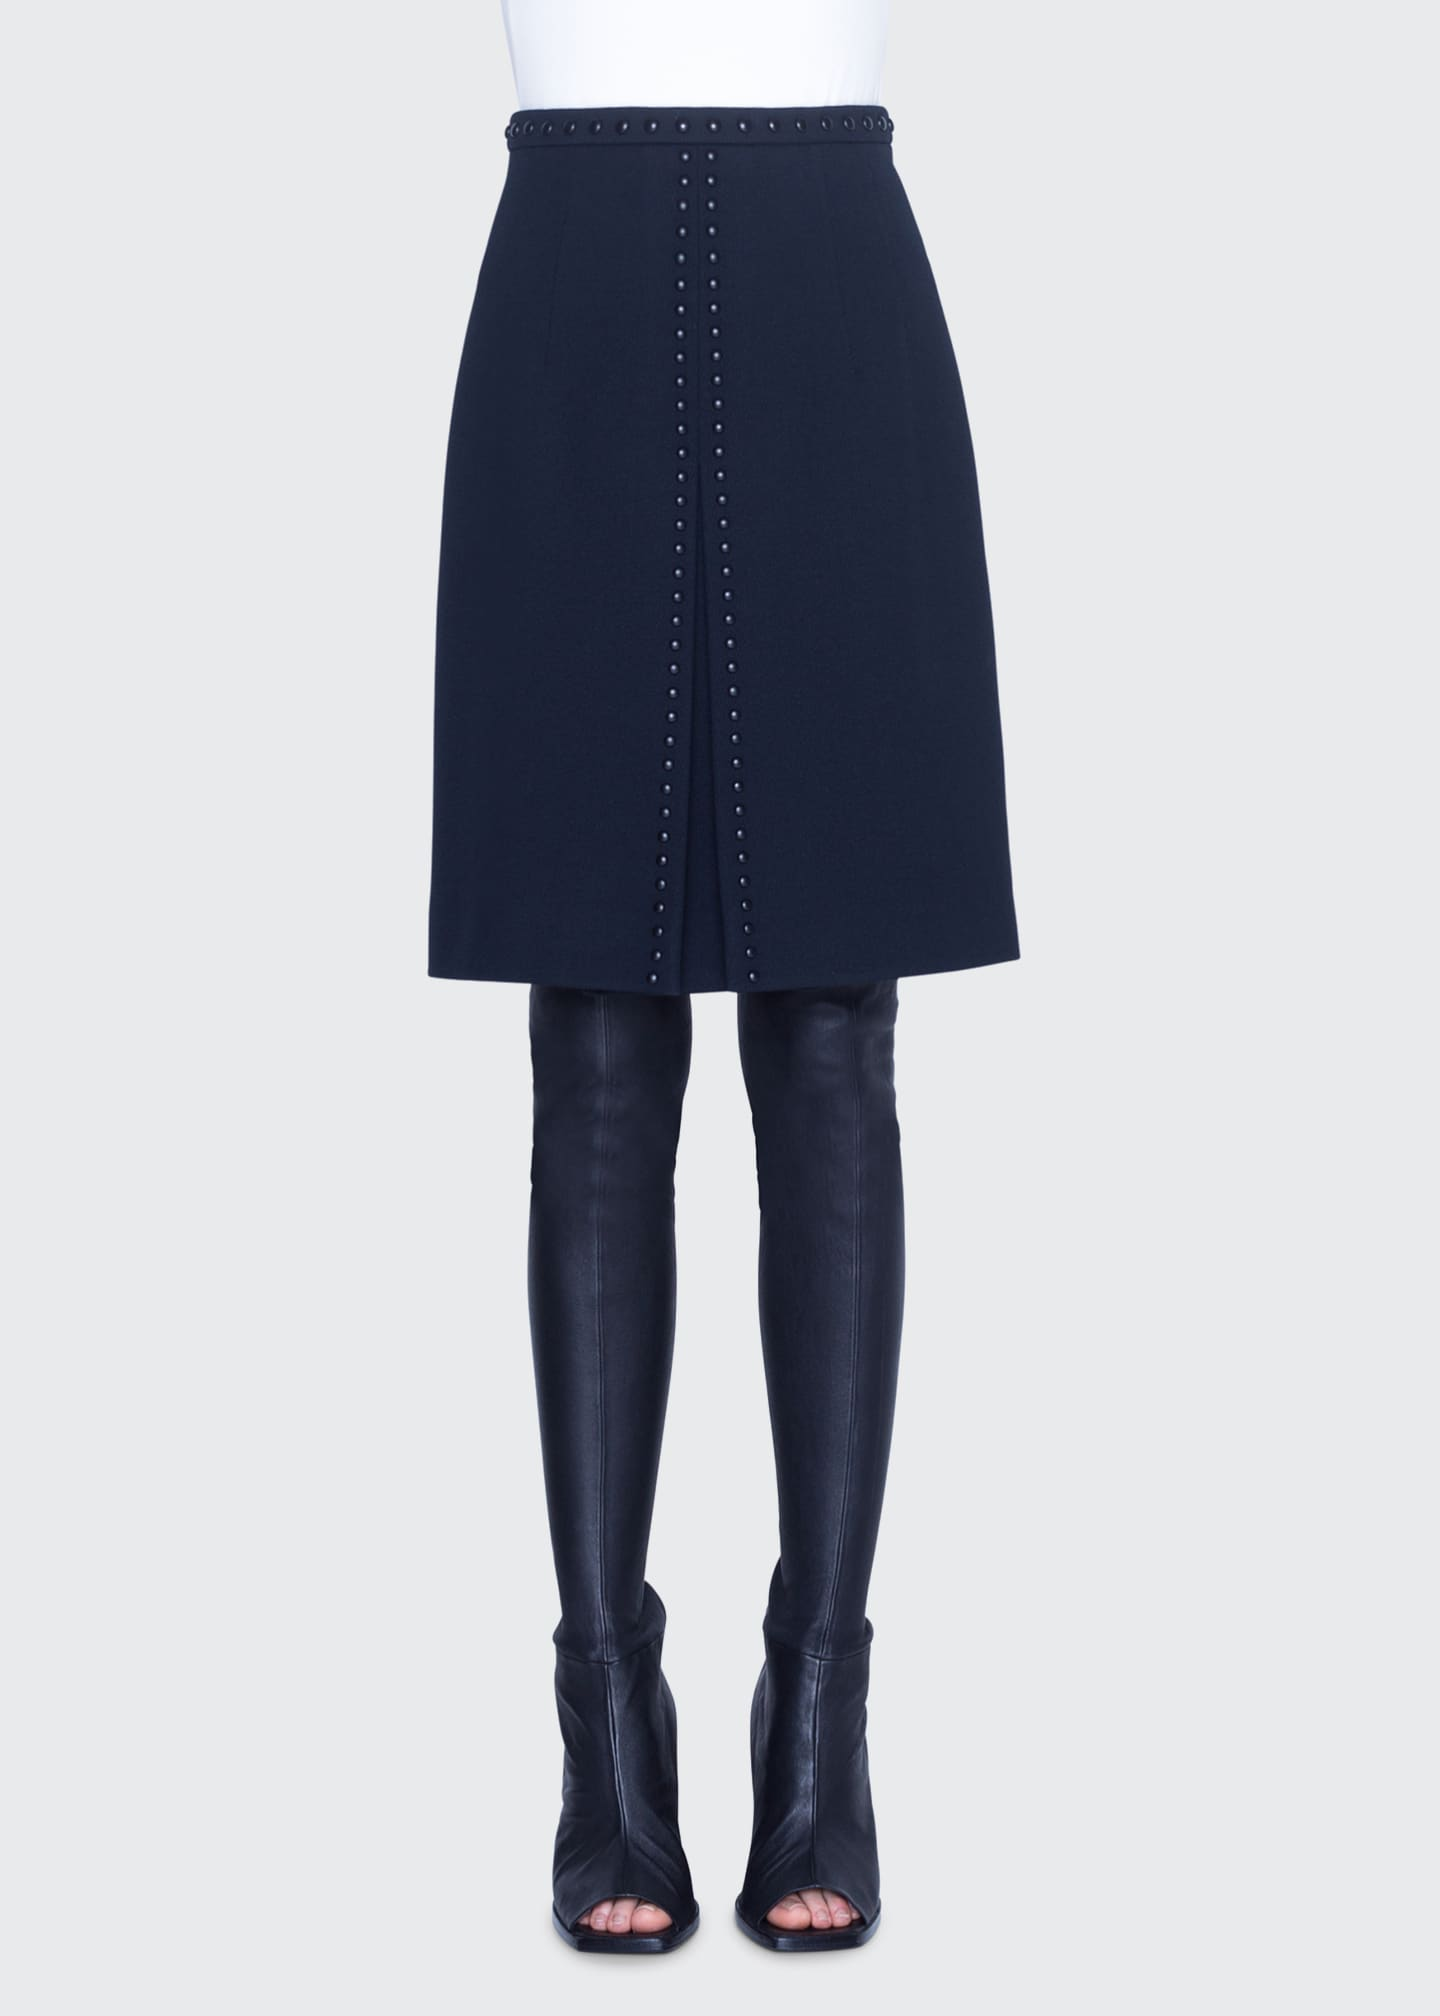 Akris punto Rivet-Trim Diagonal Knee-Length Skirt